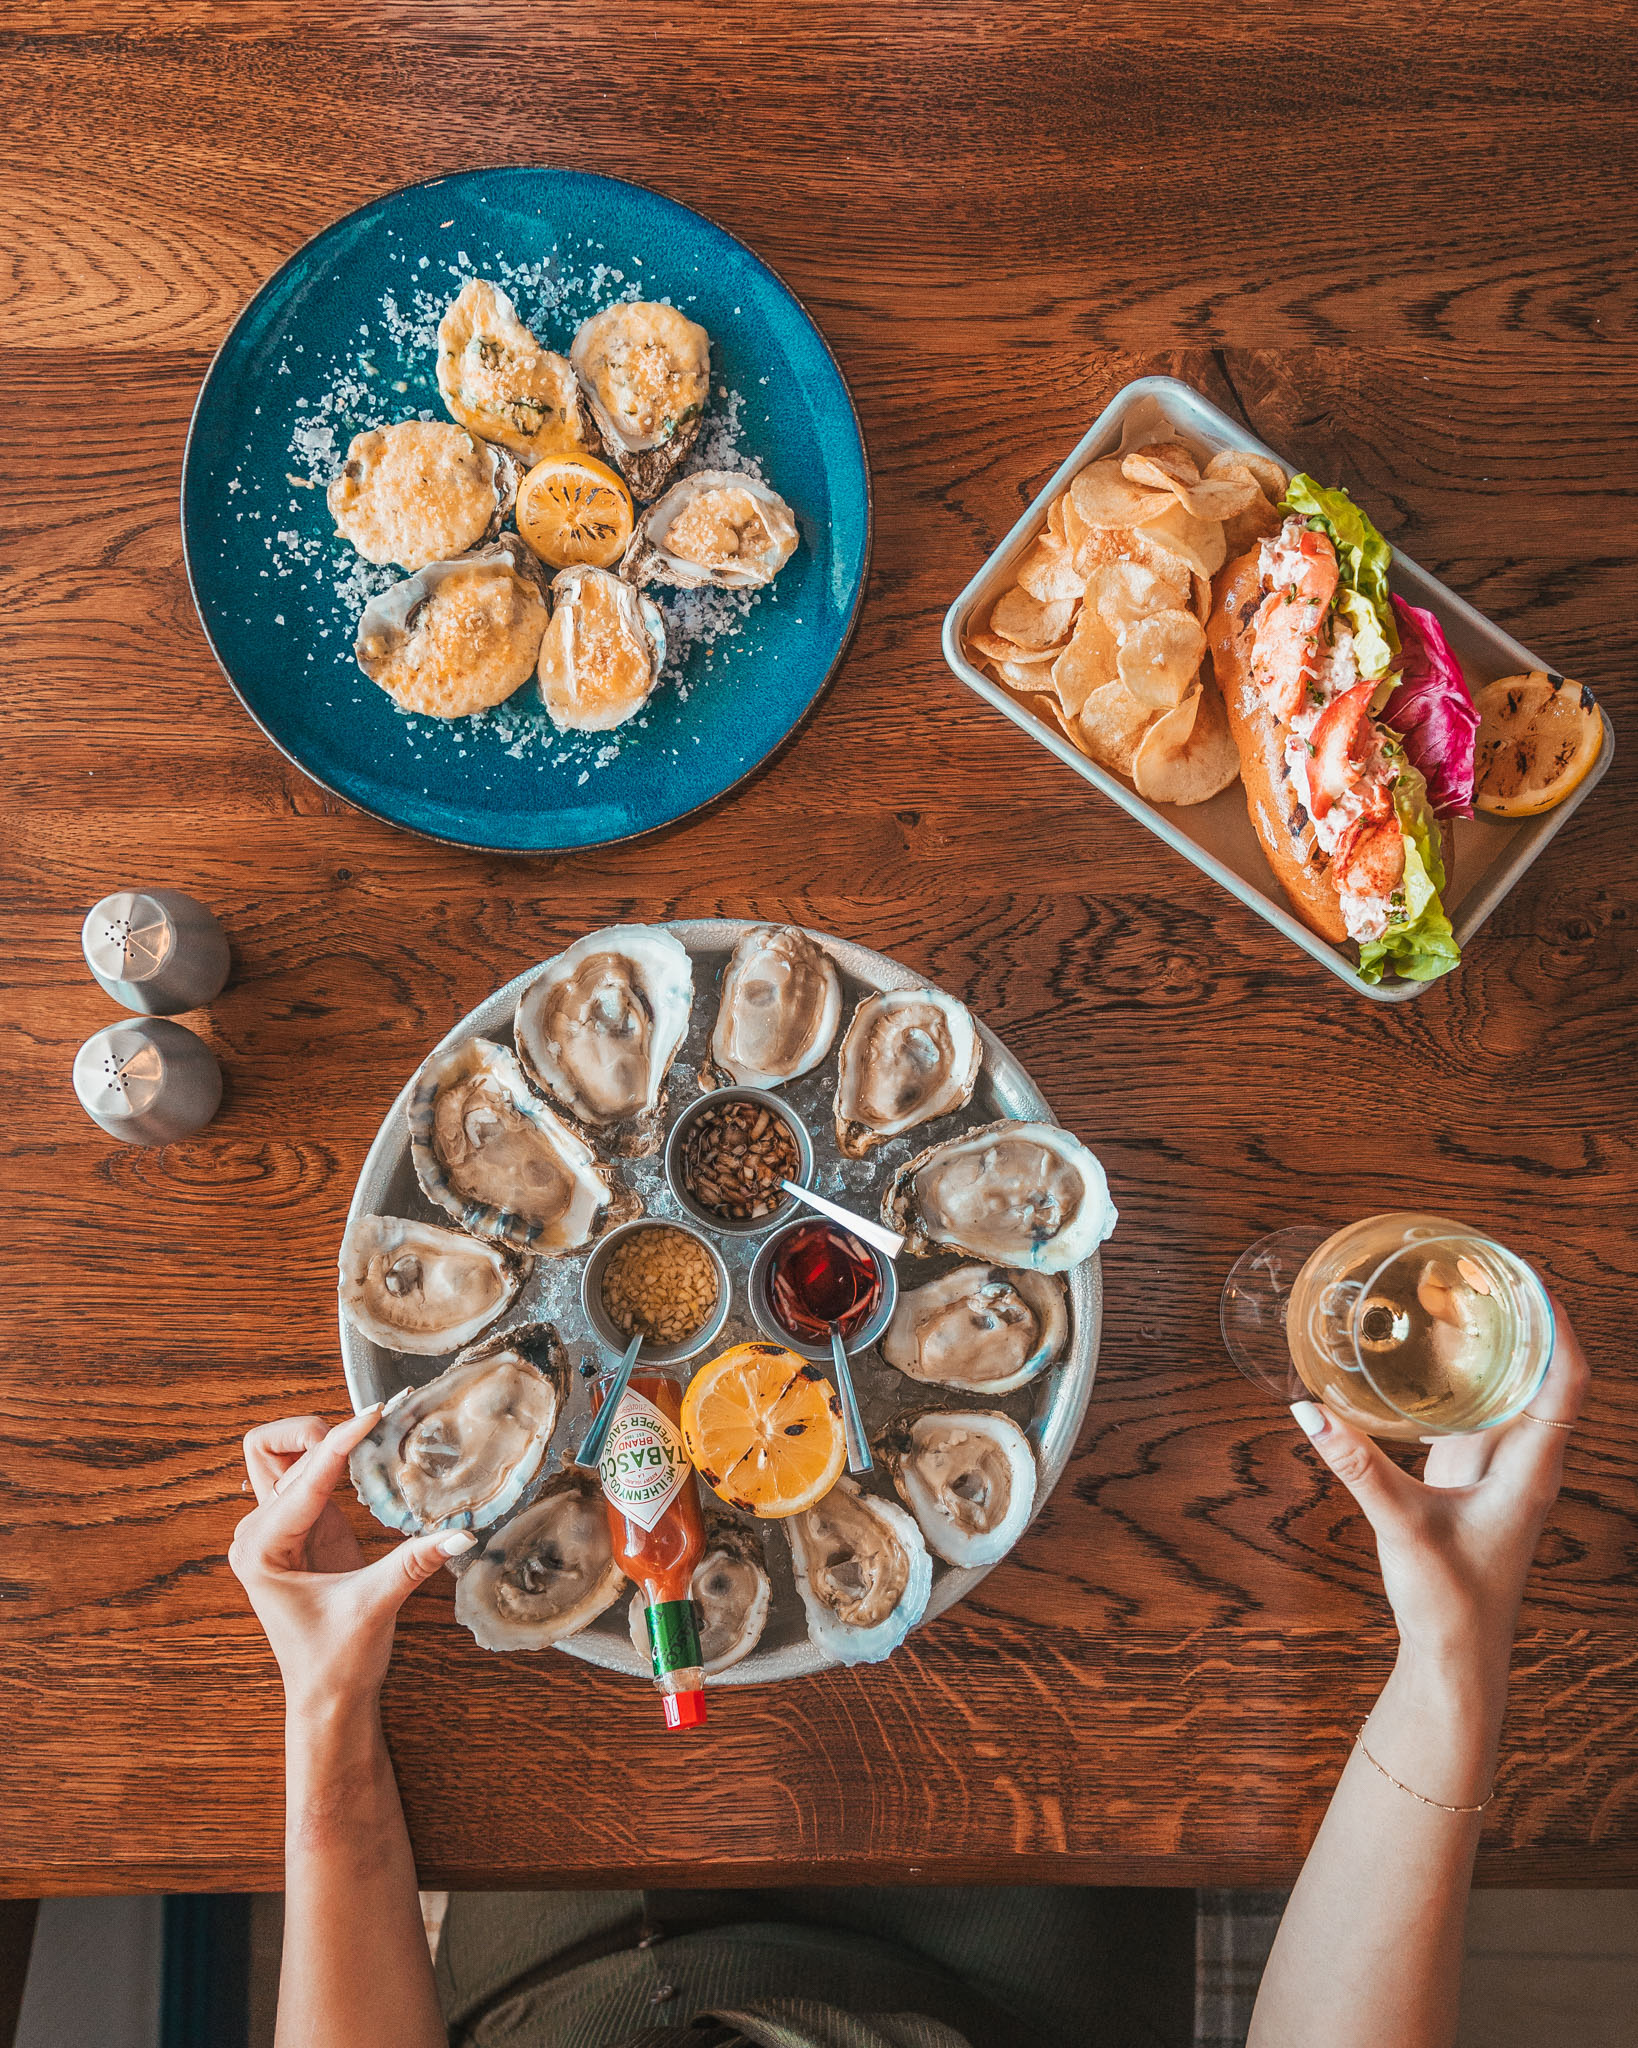 Hooked Seafood restaurant ~ Cruise Review: Royal Caribbean Navigator of the Seas